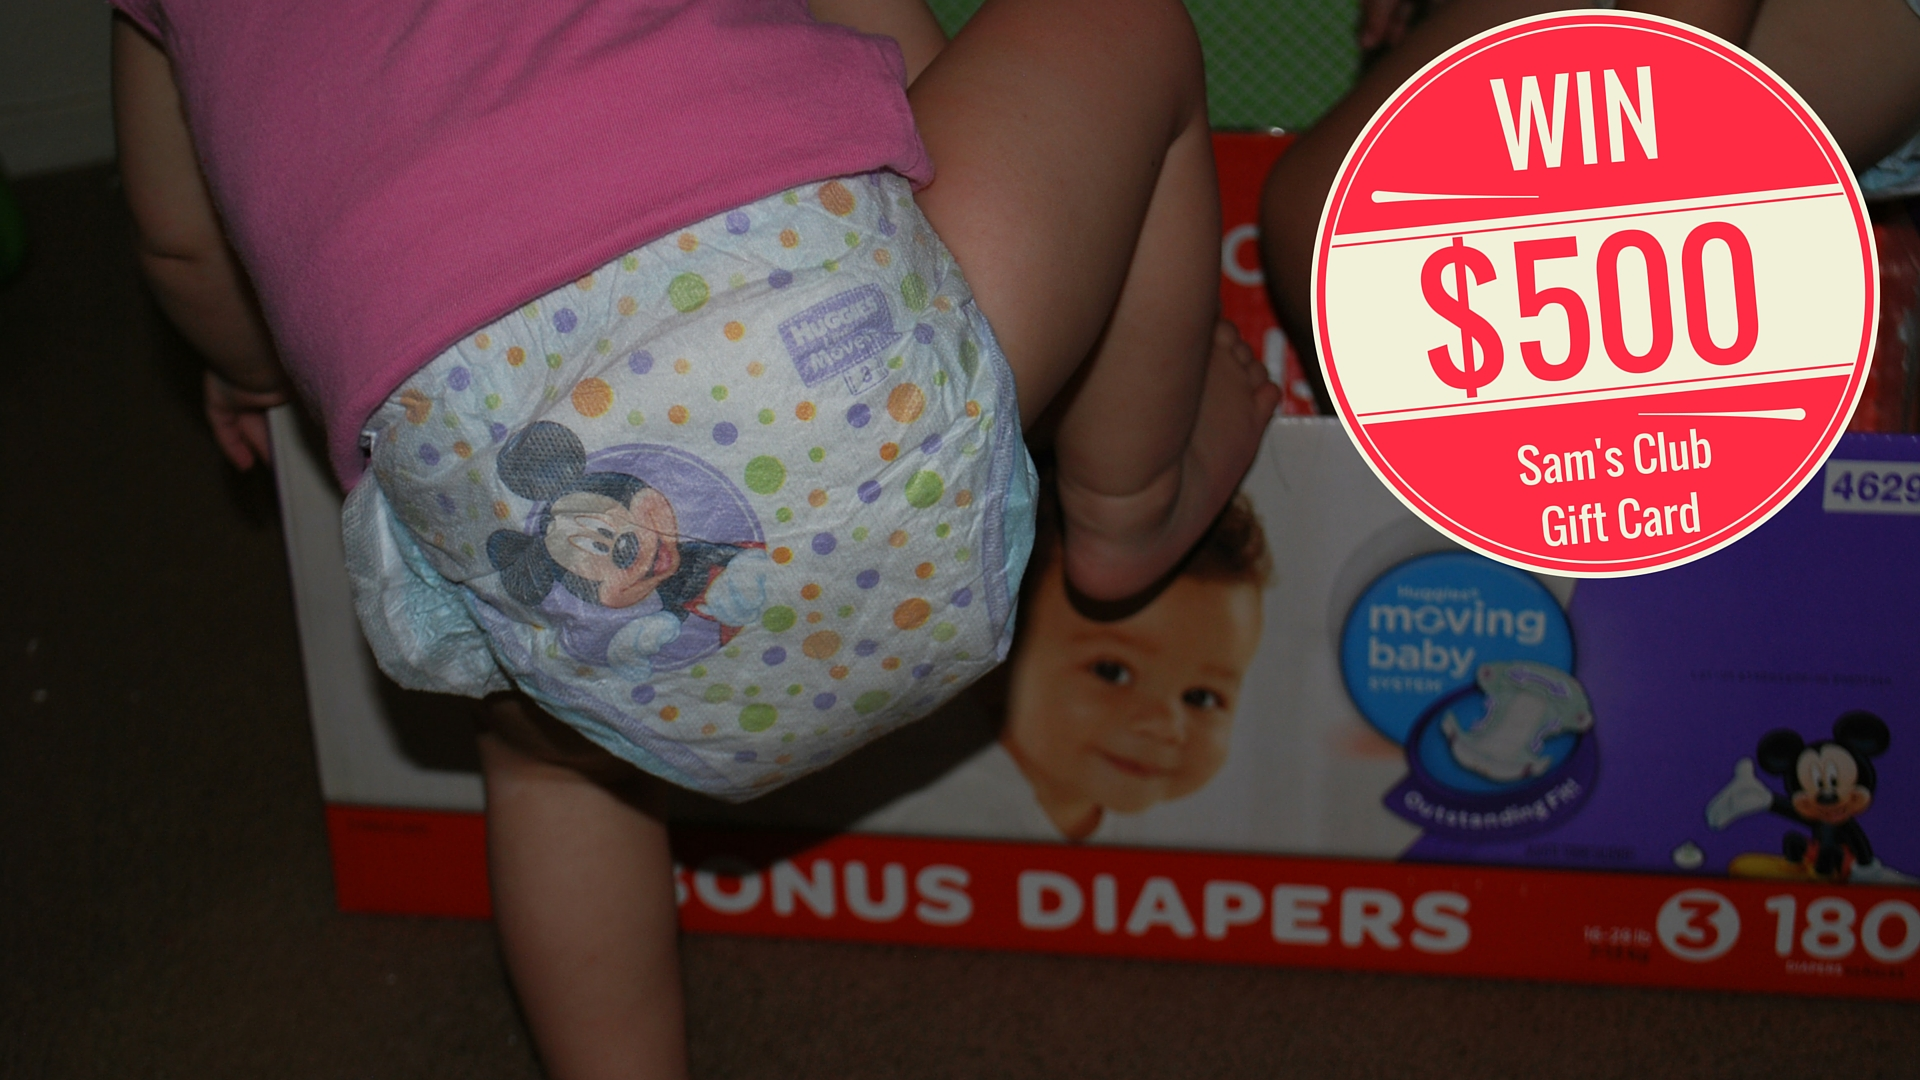 Win a $500 Sam's Club Gift Card by submitting a photo of your baby's moves! EveryMomDay.com